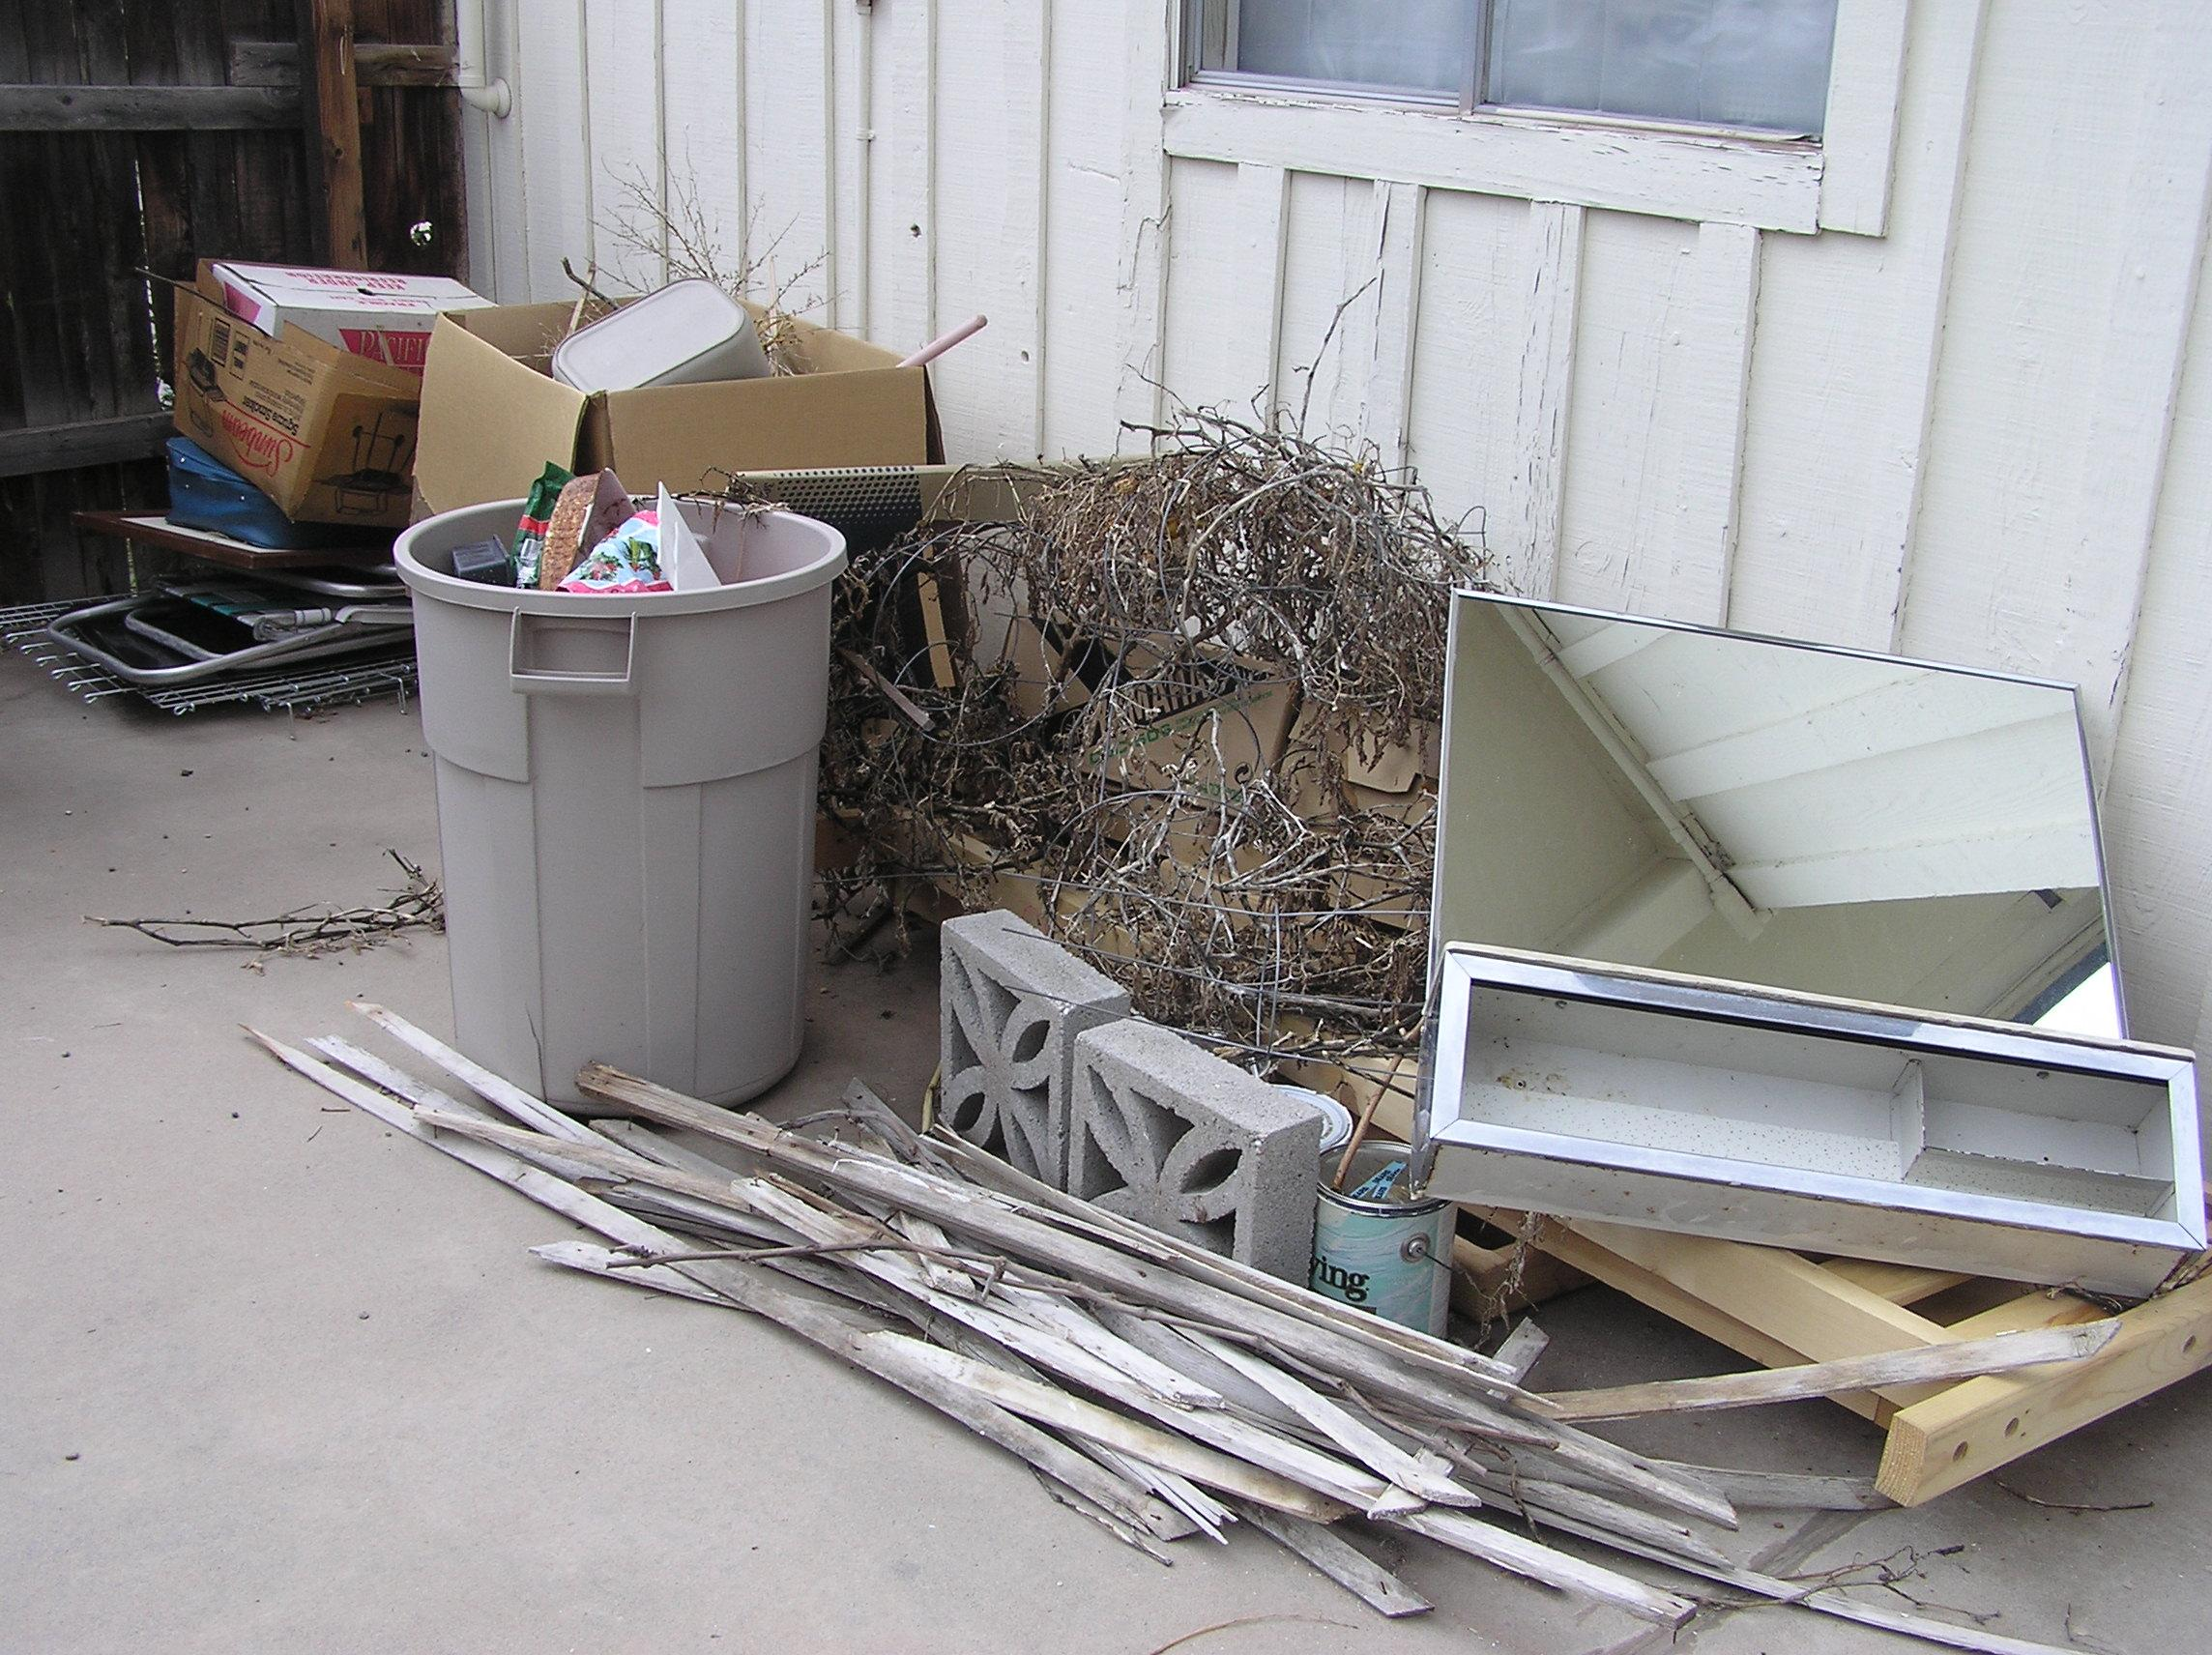 24/7 Haul called for Residential Junk Removal